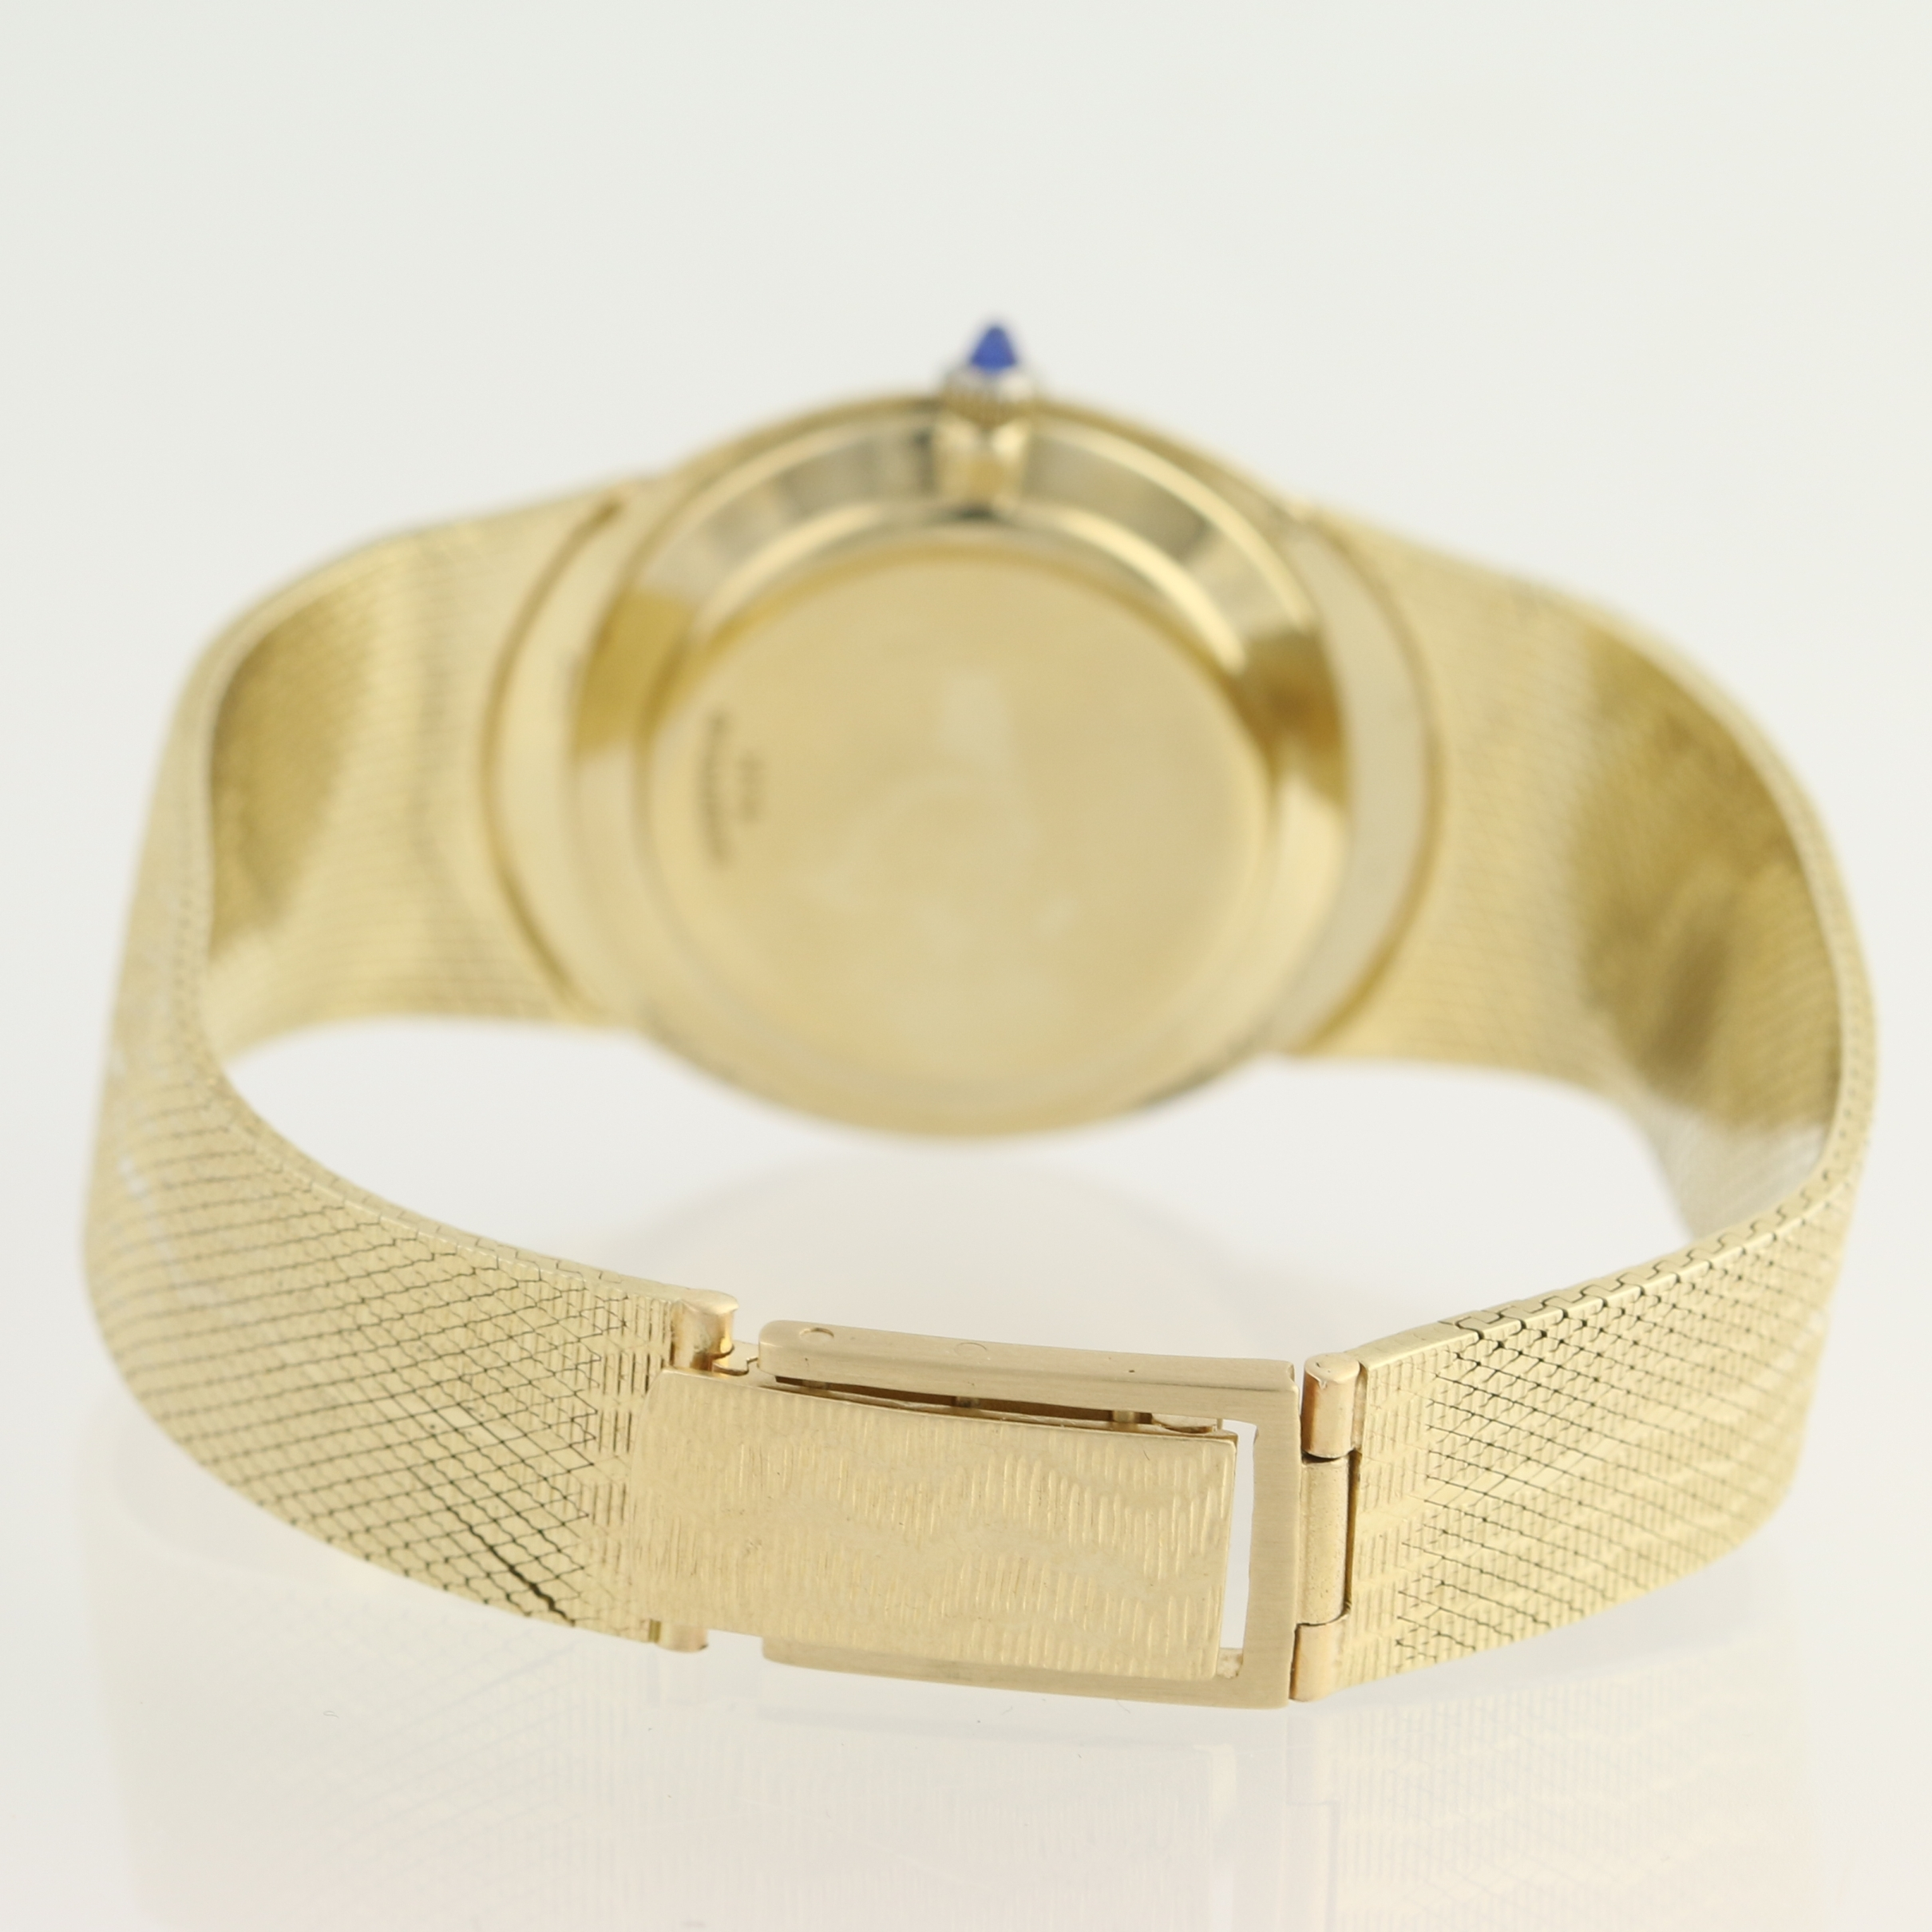 oval hair styles lucien piccard 14k gold blue serviced w 4991